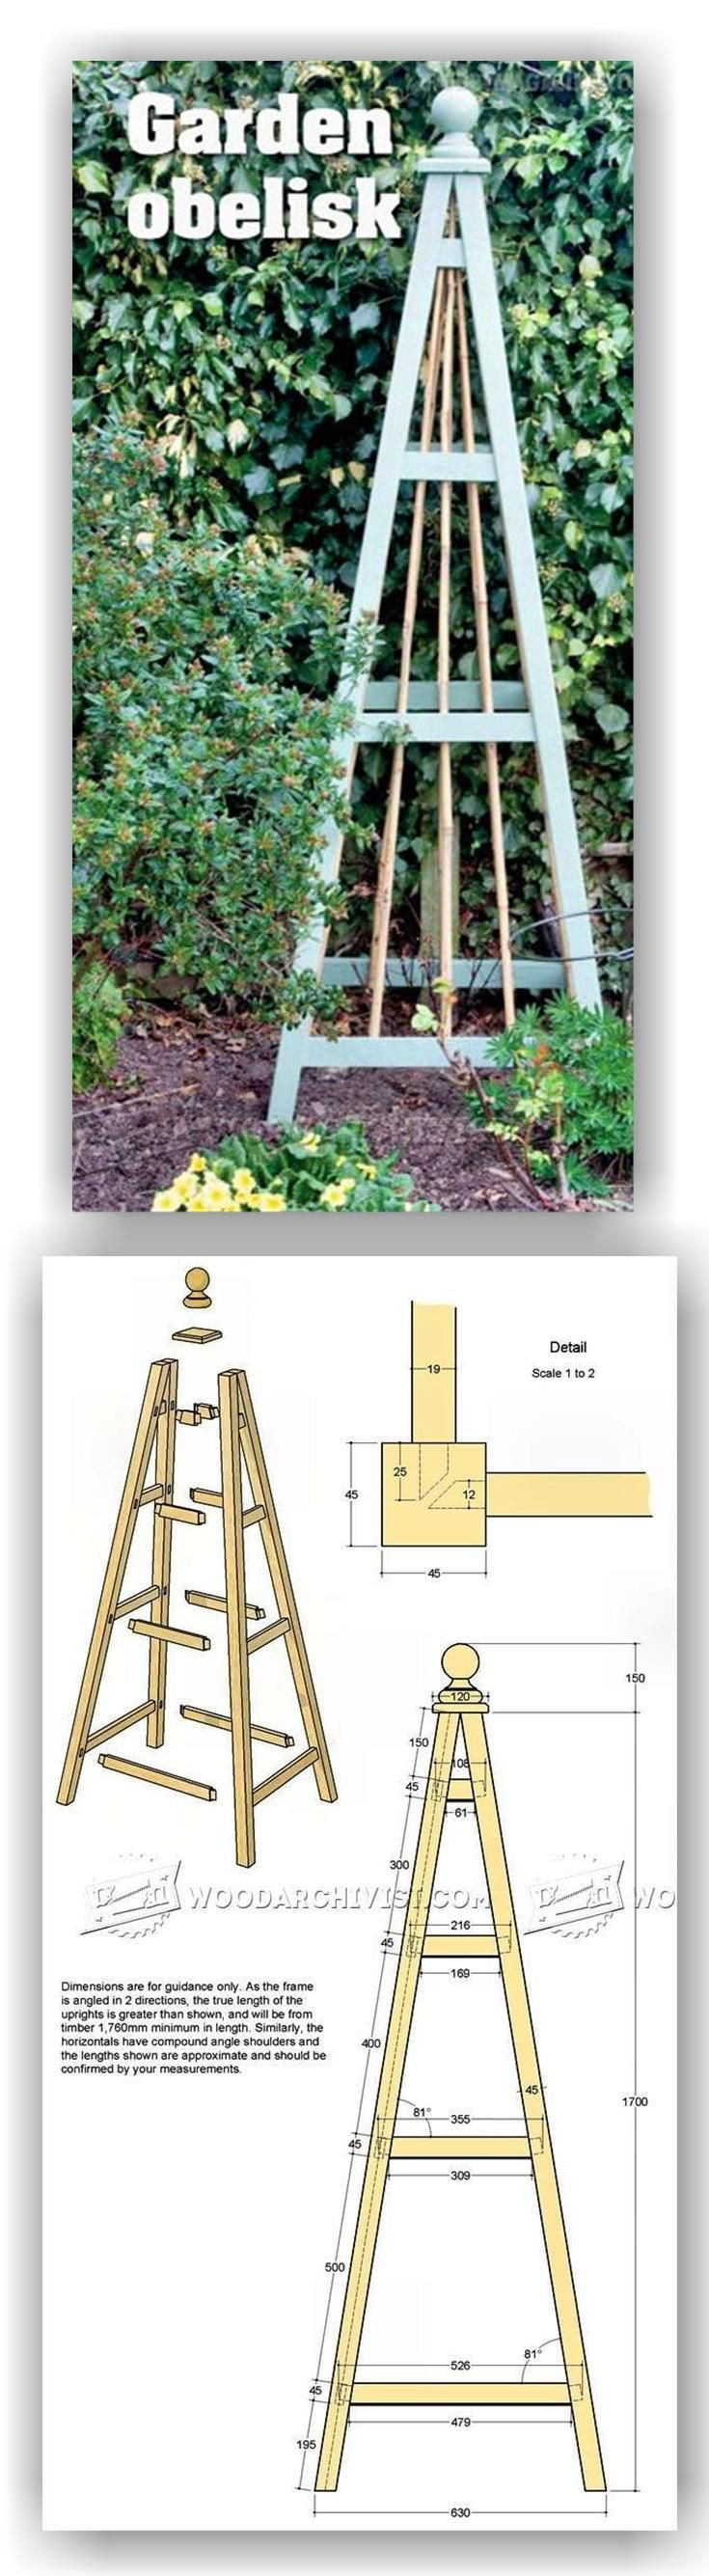 French tuteur trellis woodworking projects amp plans - Woodarchivist Is A Woodworking Resource Site Which Focuses On Woodworking Projects Plans Tips Jigs Tools